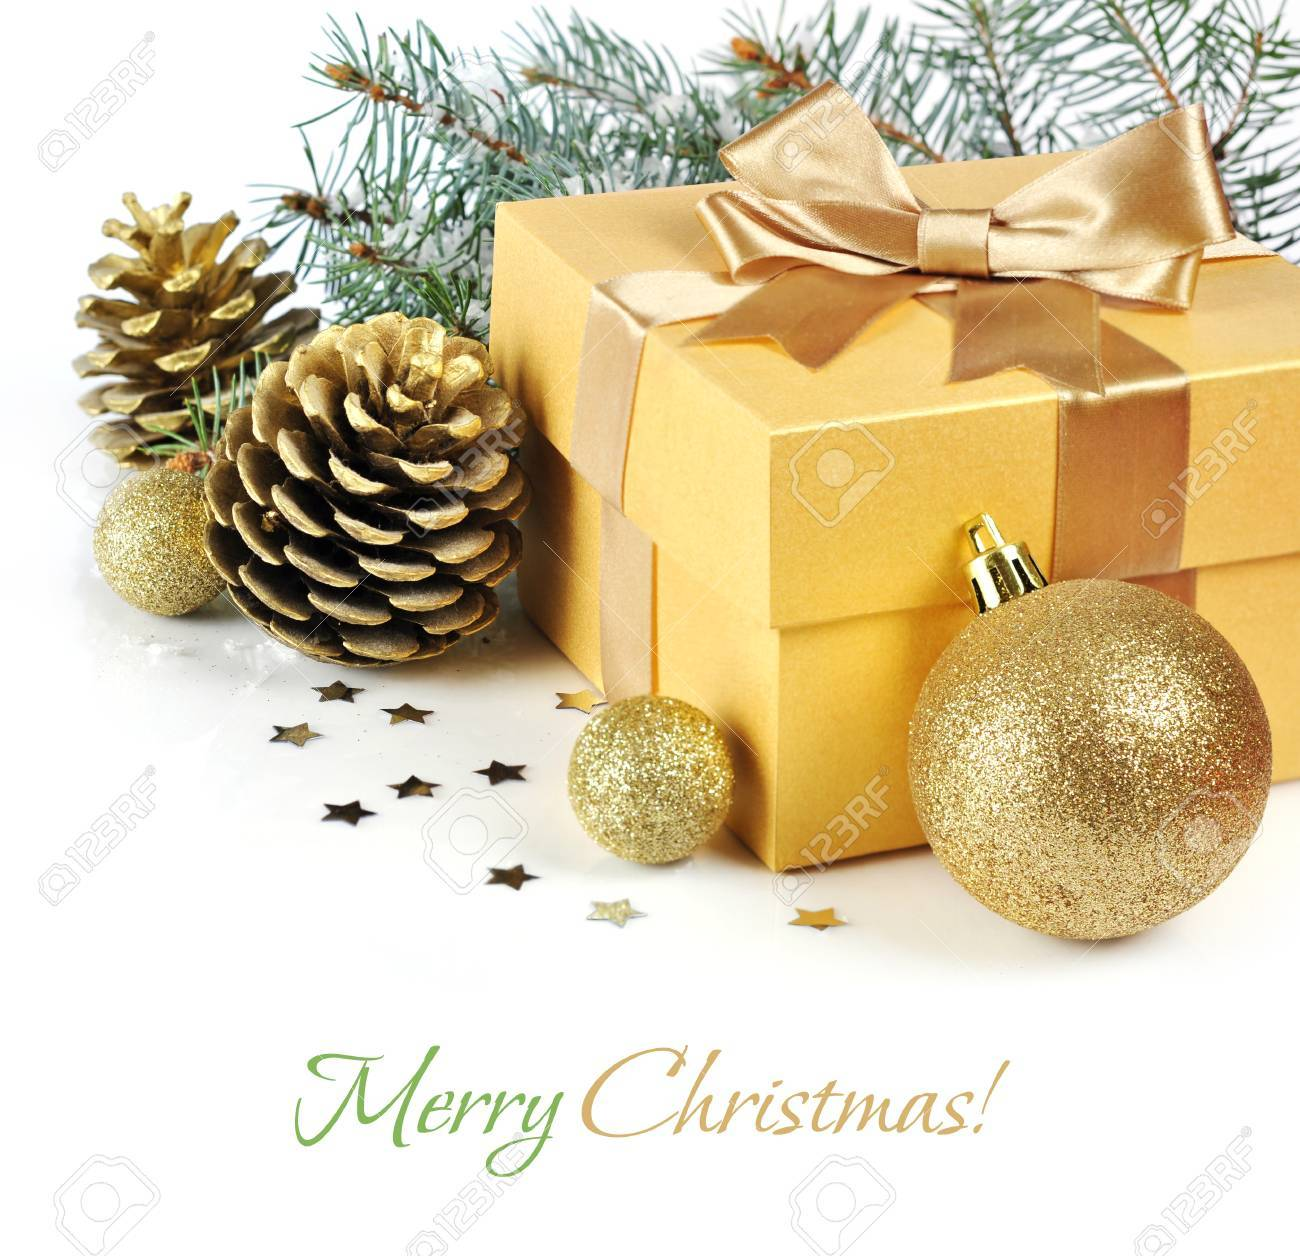 gold Christmas gift with balls and pinecones isolated on white background Stock Photo - 16602568